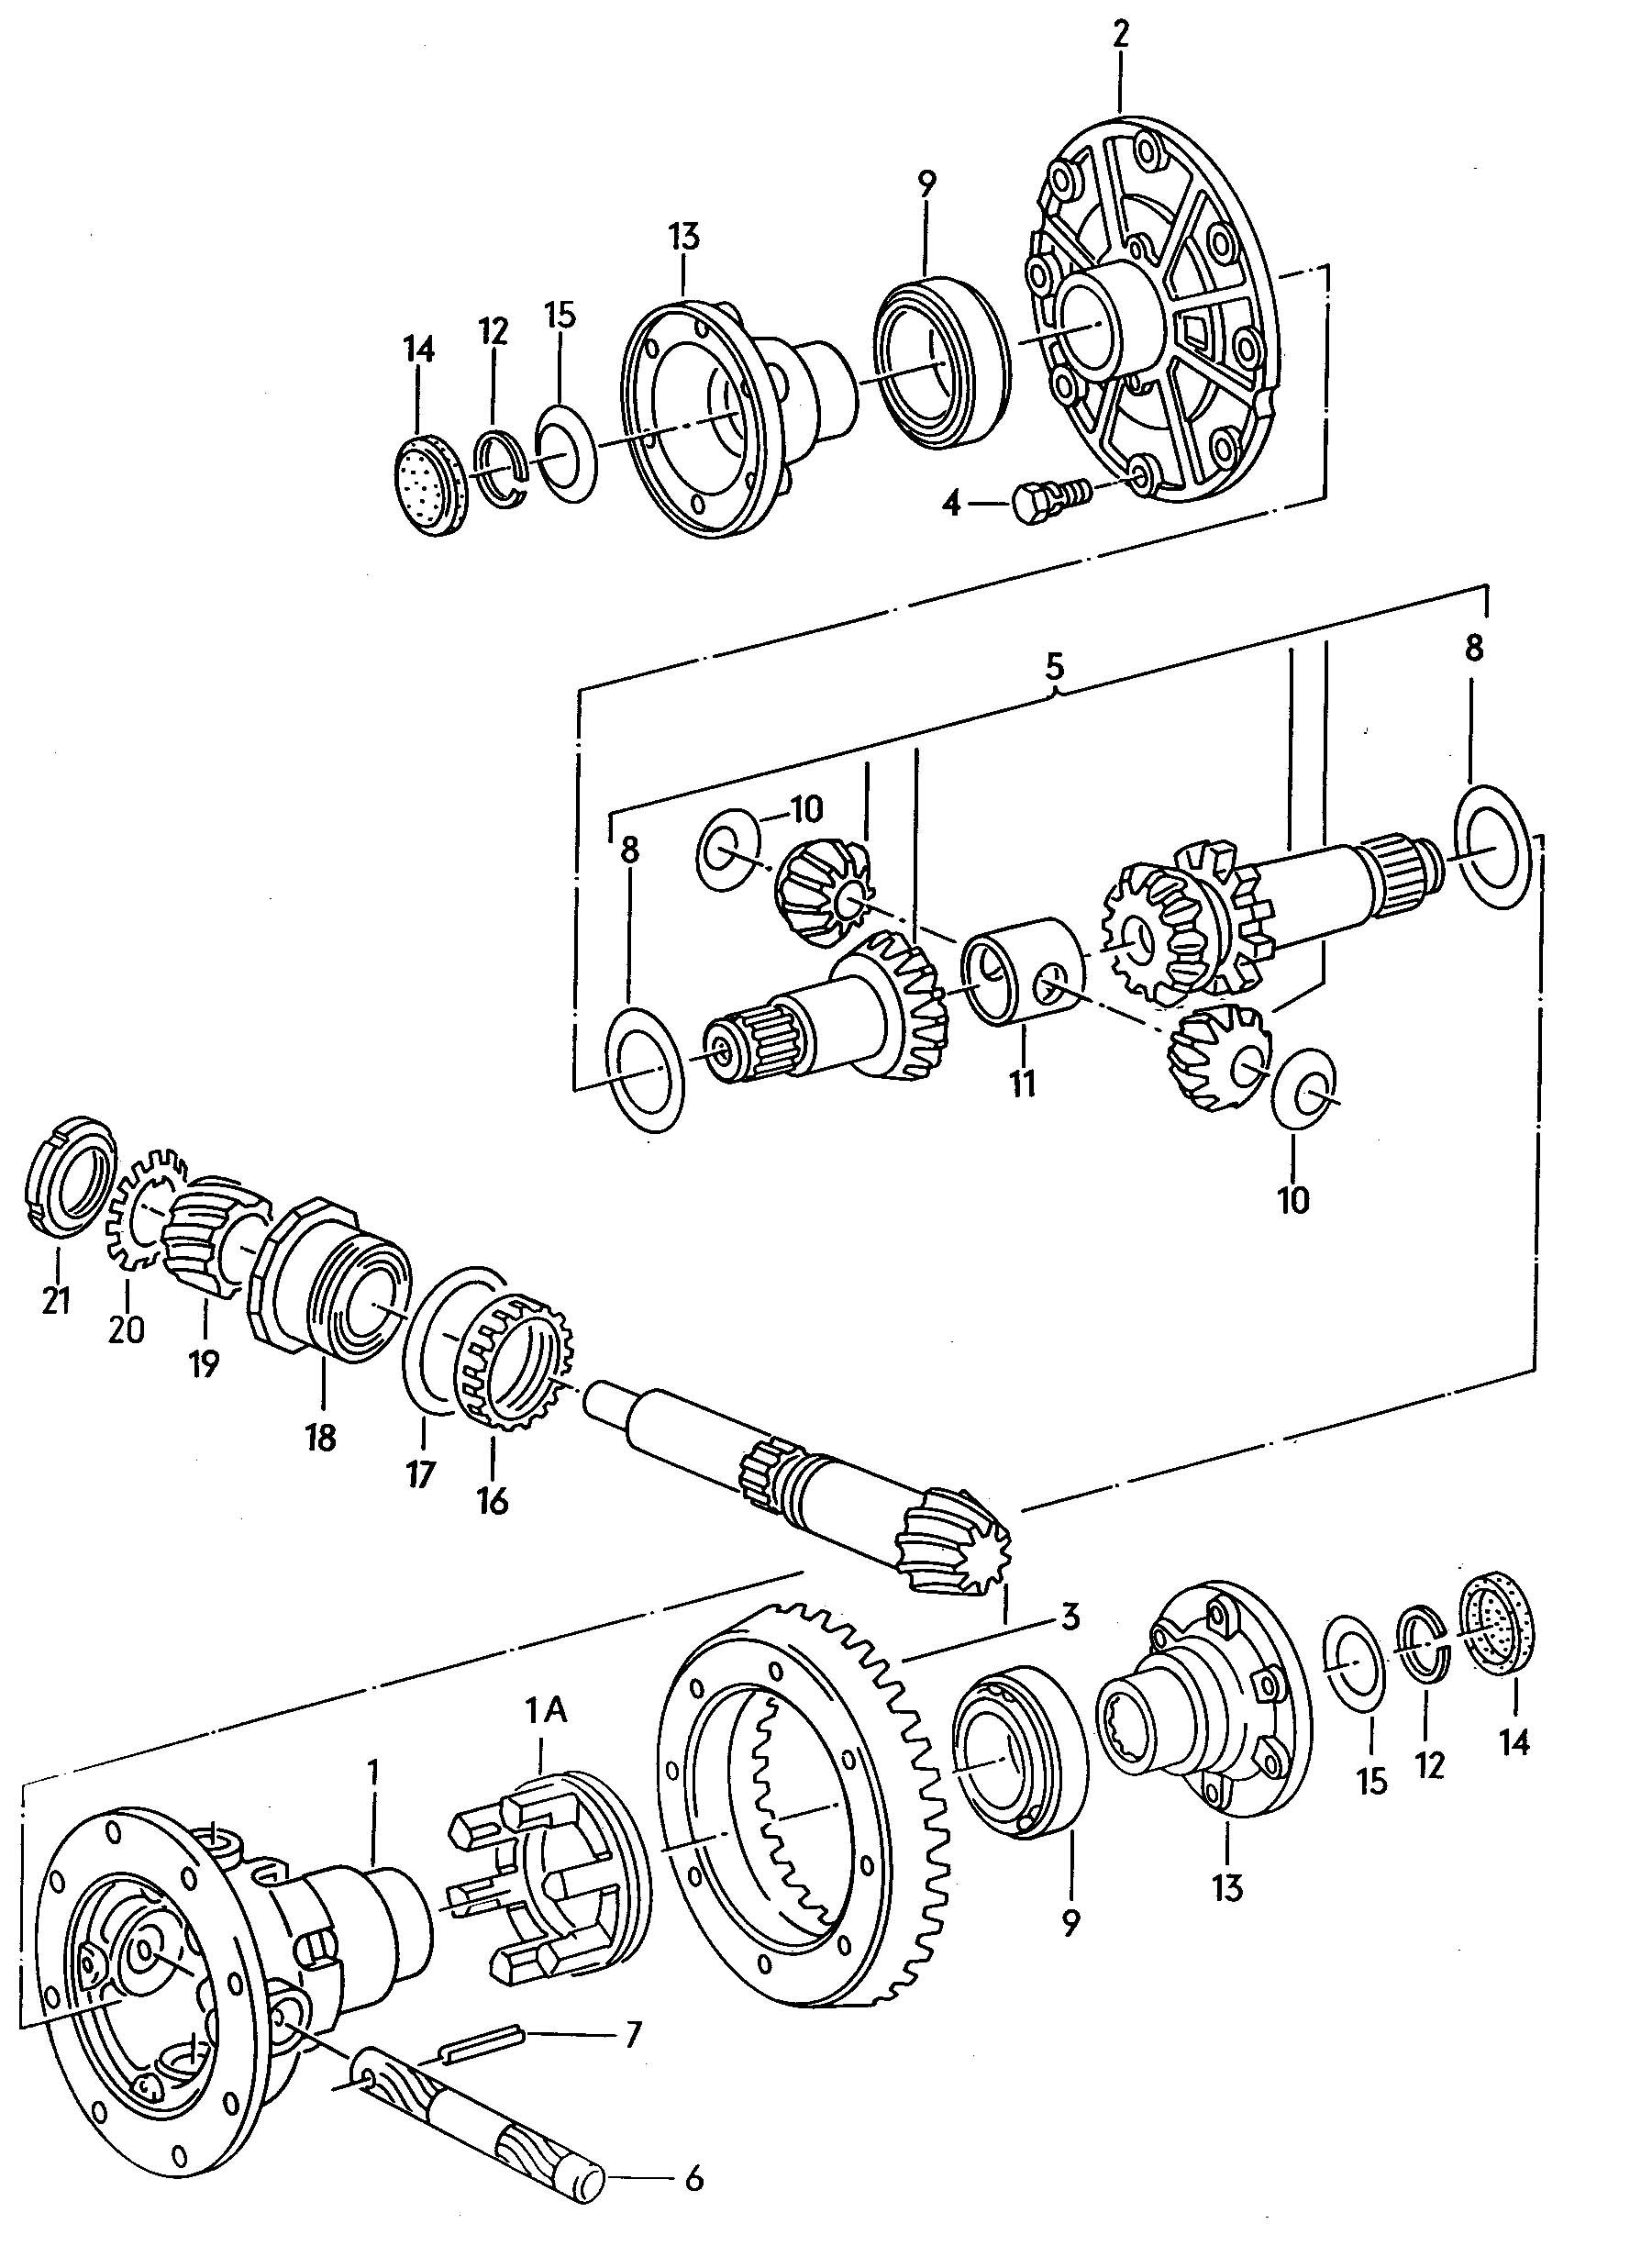 62 Vw Beetle Parts Wiring Diagram And Engine 99 Volkswagen Fuse Box Showassembly On